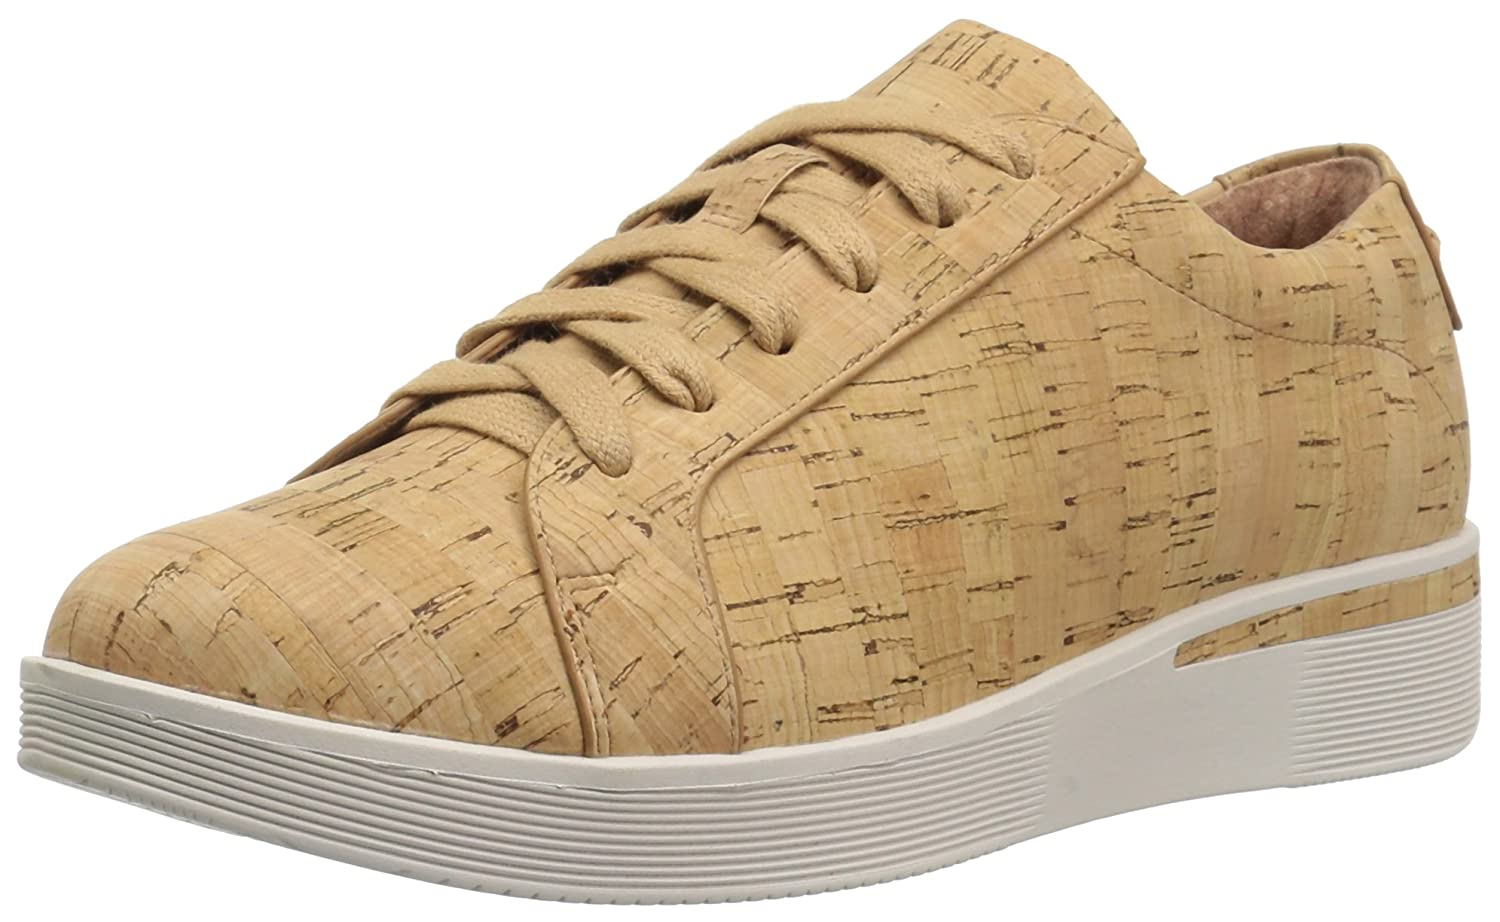 Gentle Souls by Kenneth Cole Women's Haddie Low Profile Fashion Sneaker Embossed Fashion Sneaker B075GZWN5C 6 M US|Natural Cork